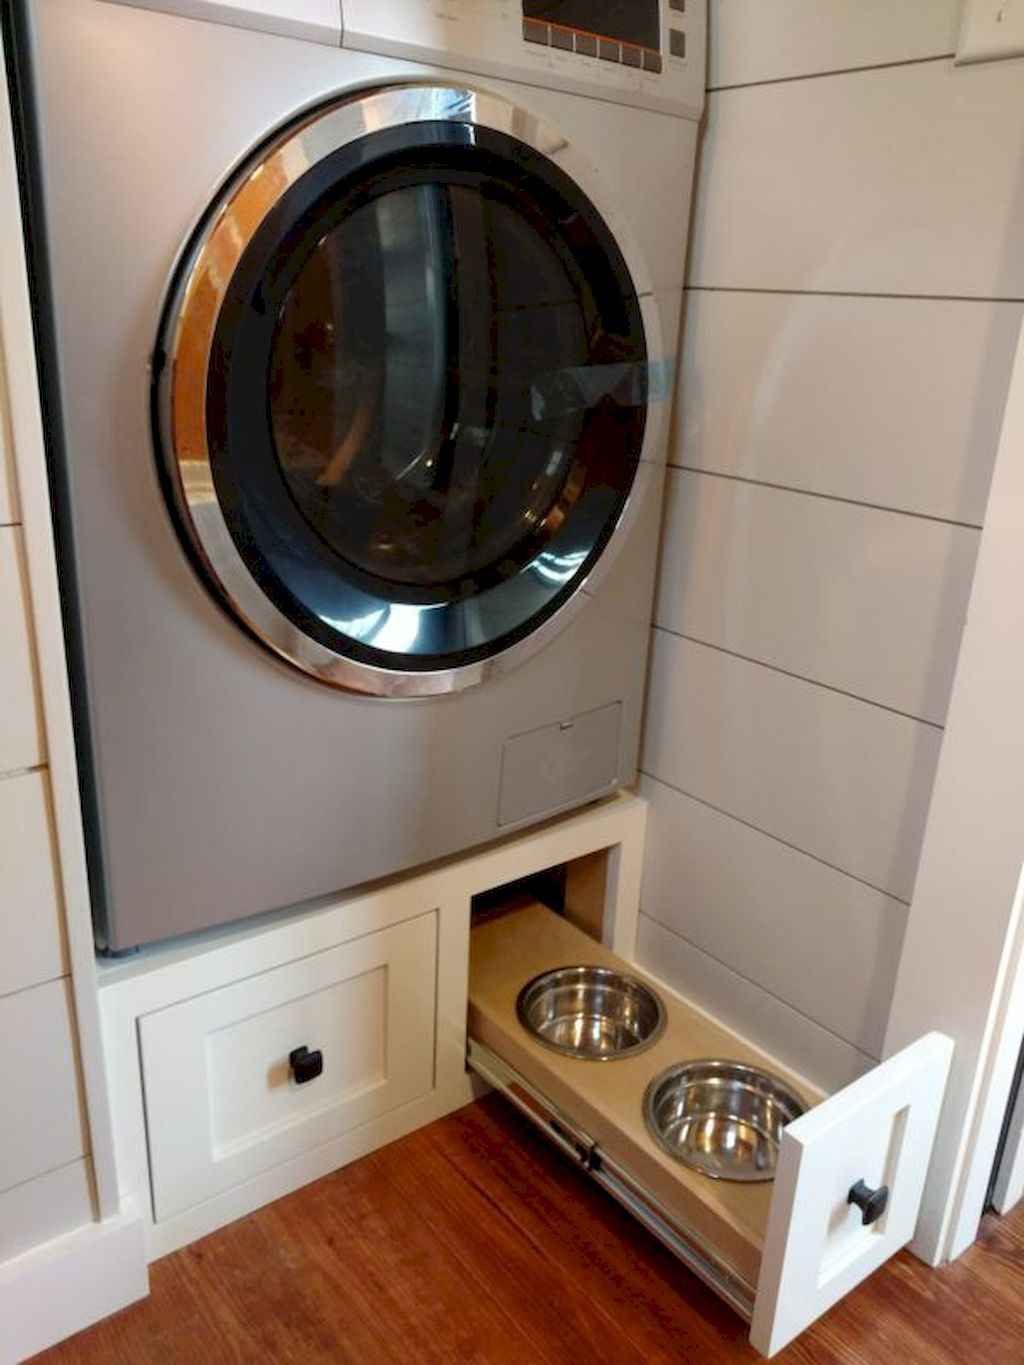 62 Space Saving Tiny House Storage Organization and Tips Ideas